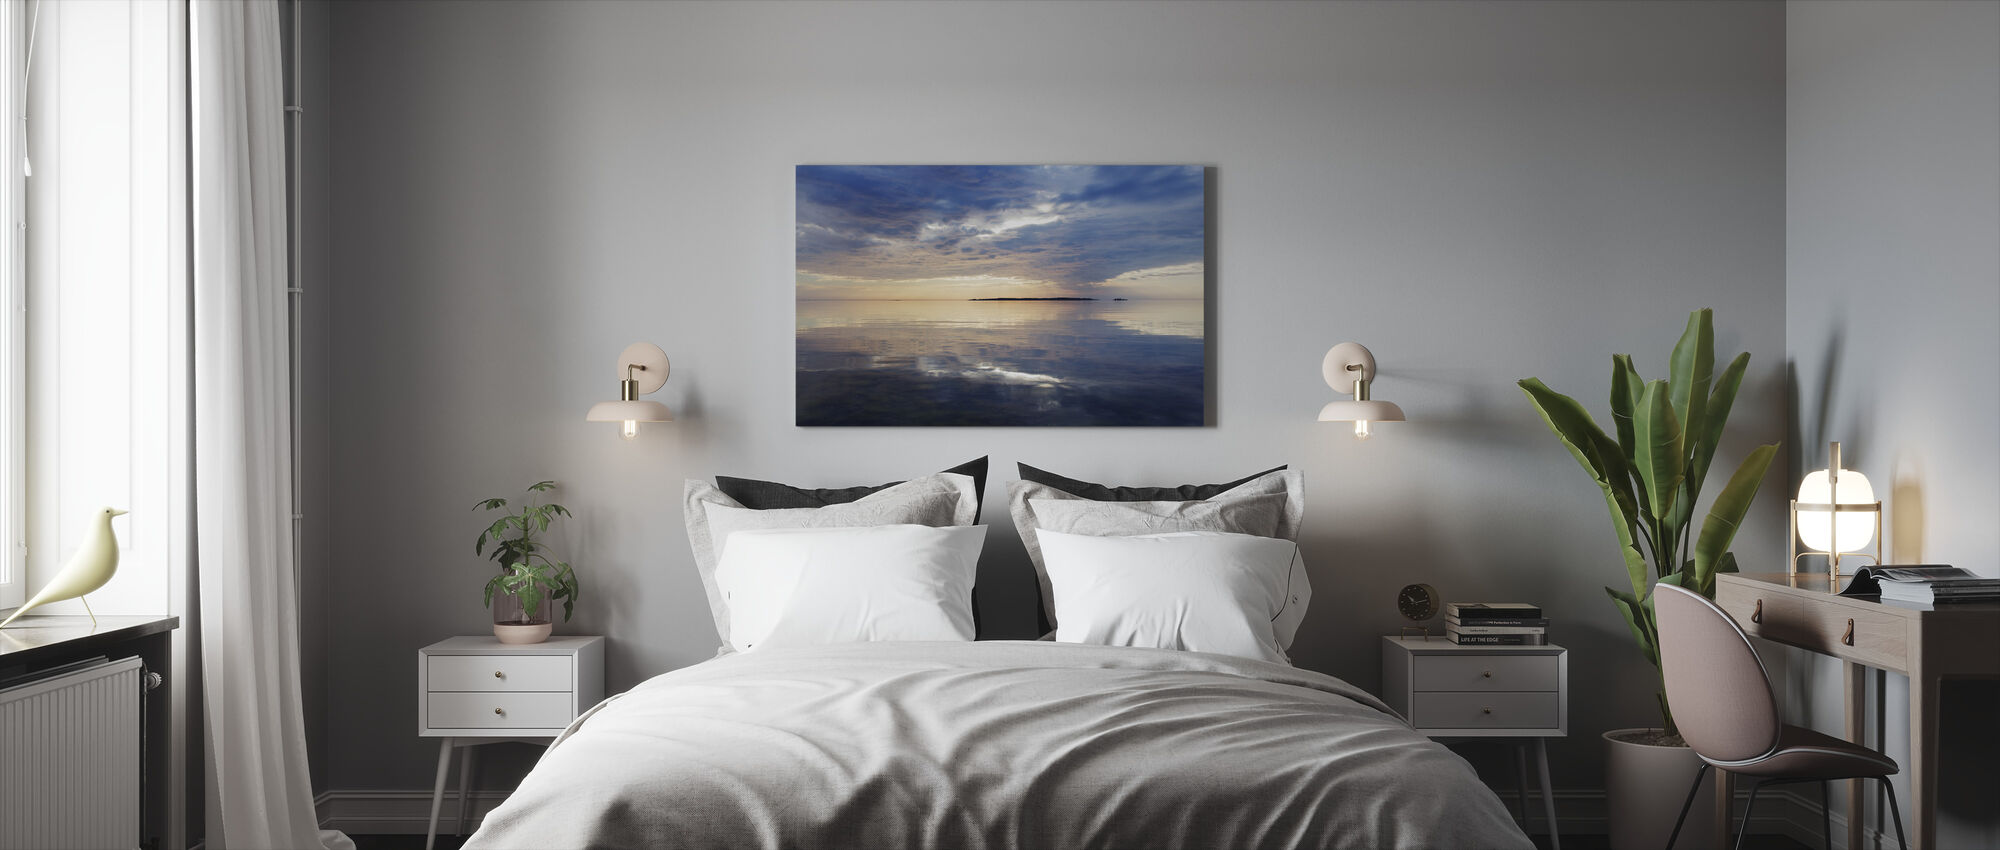 Sky Mirrored in Baltic Sea - Canvas print - Bedroom